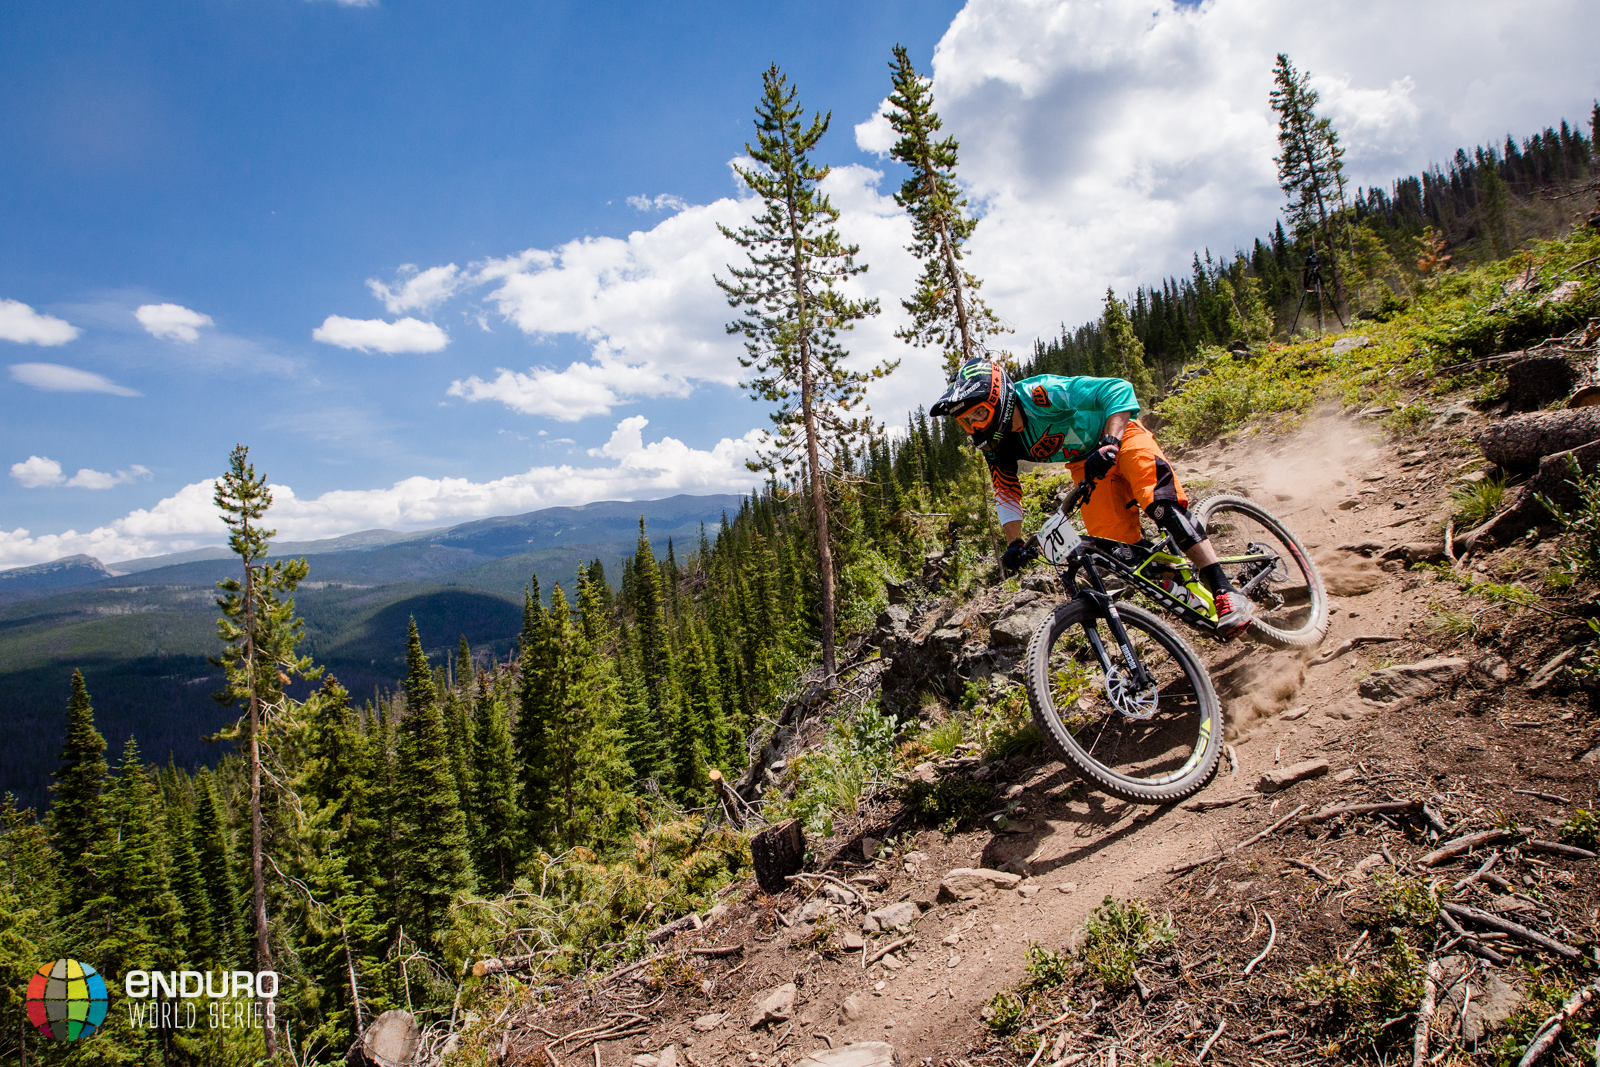 Mitch Ropelato on stage four. EWS 5 2014 Winter Park. Photo by Matt Wragg